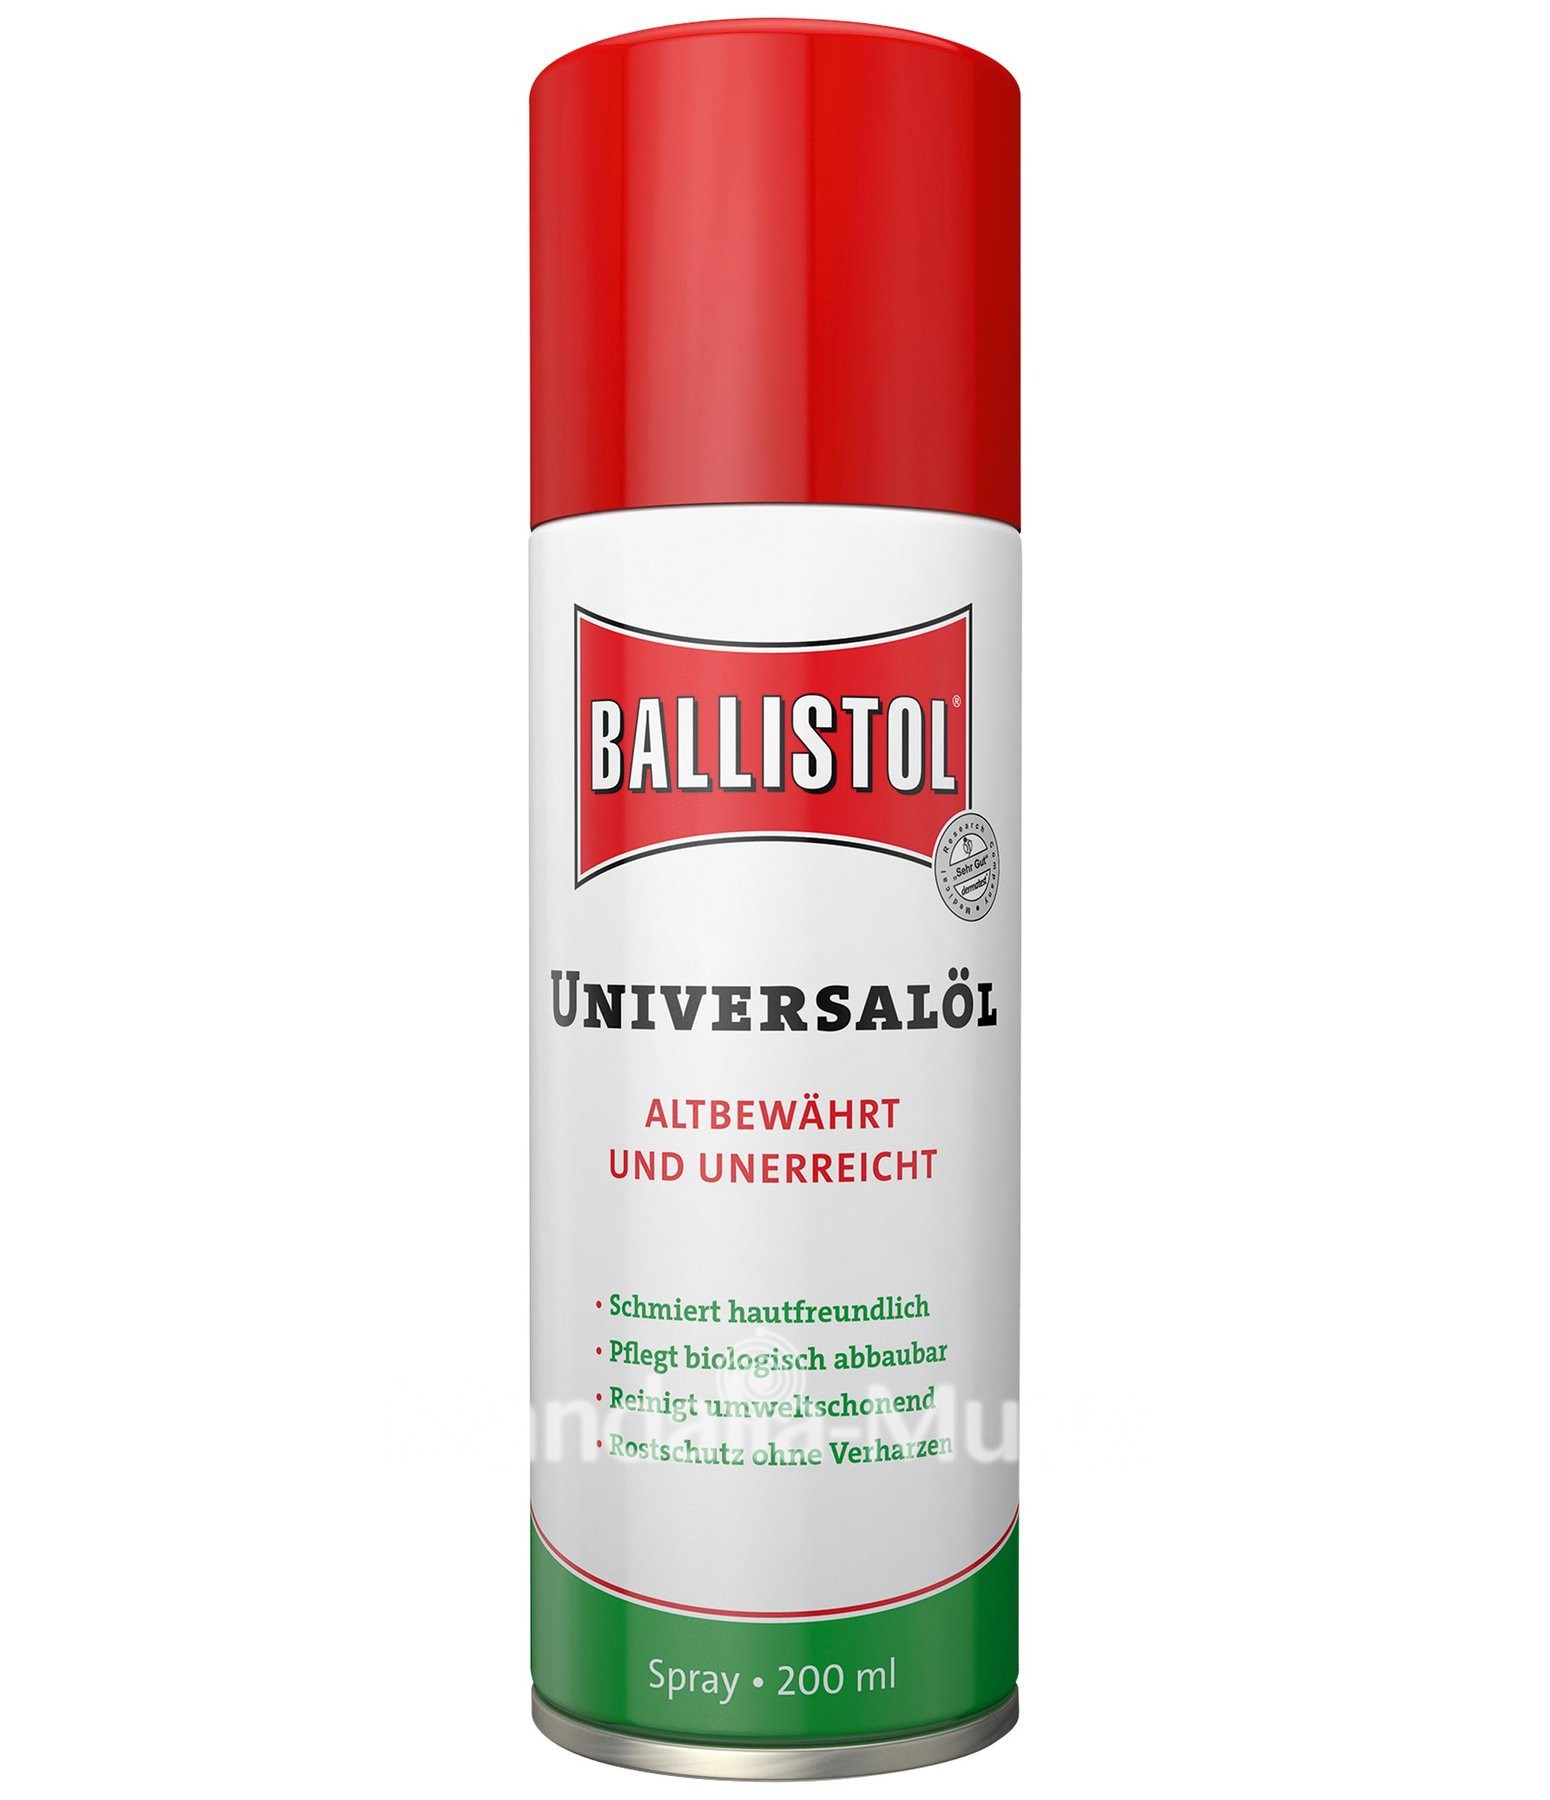 Huile Naturelle Balistol Spray 200mL